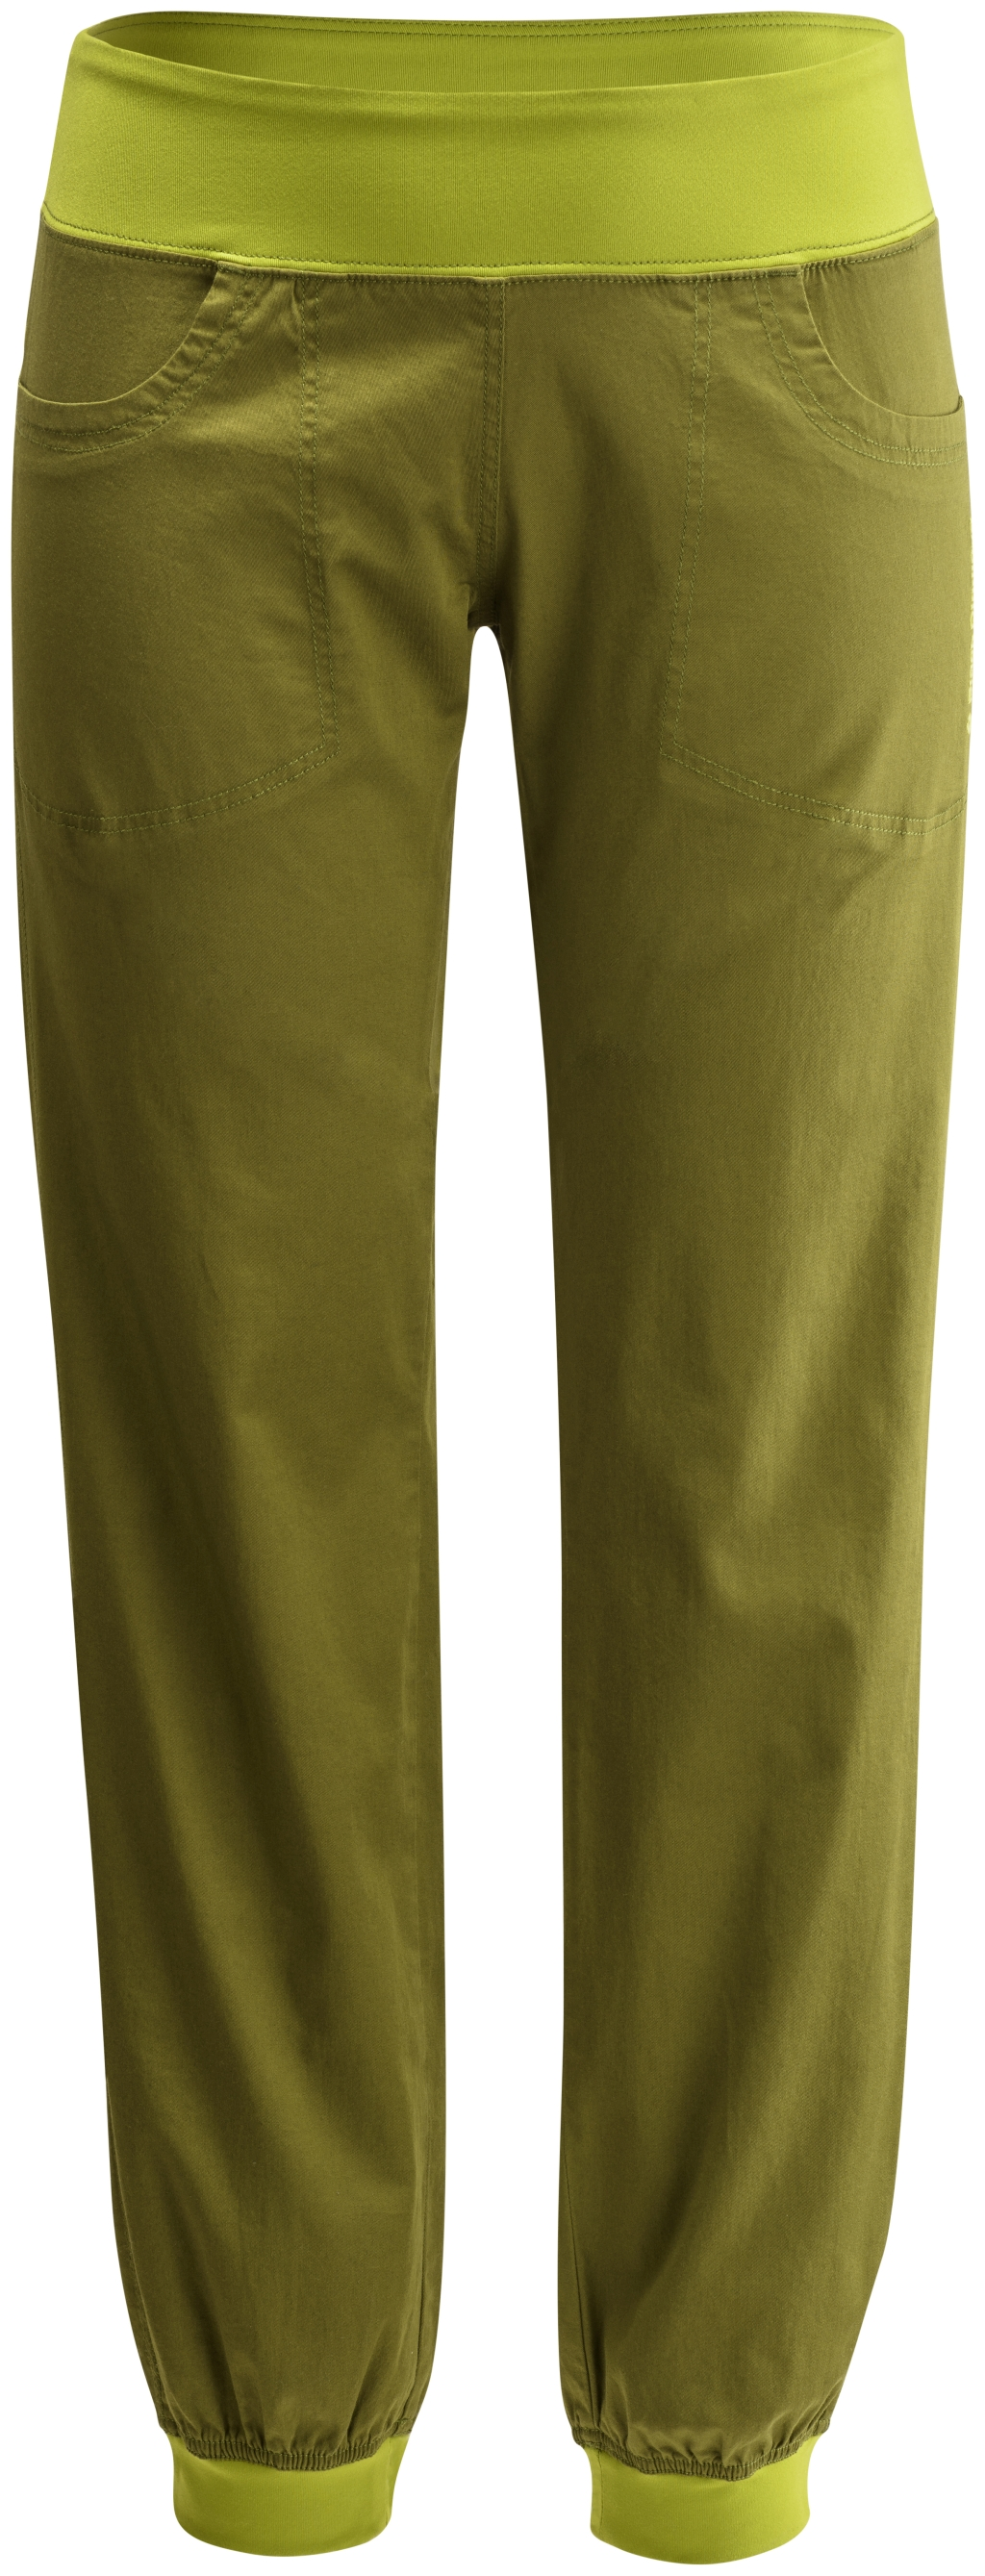 Black Diamond Notion Pants Women's Sage-30